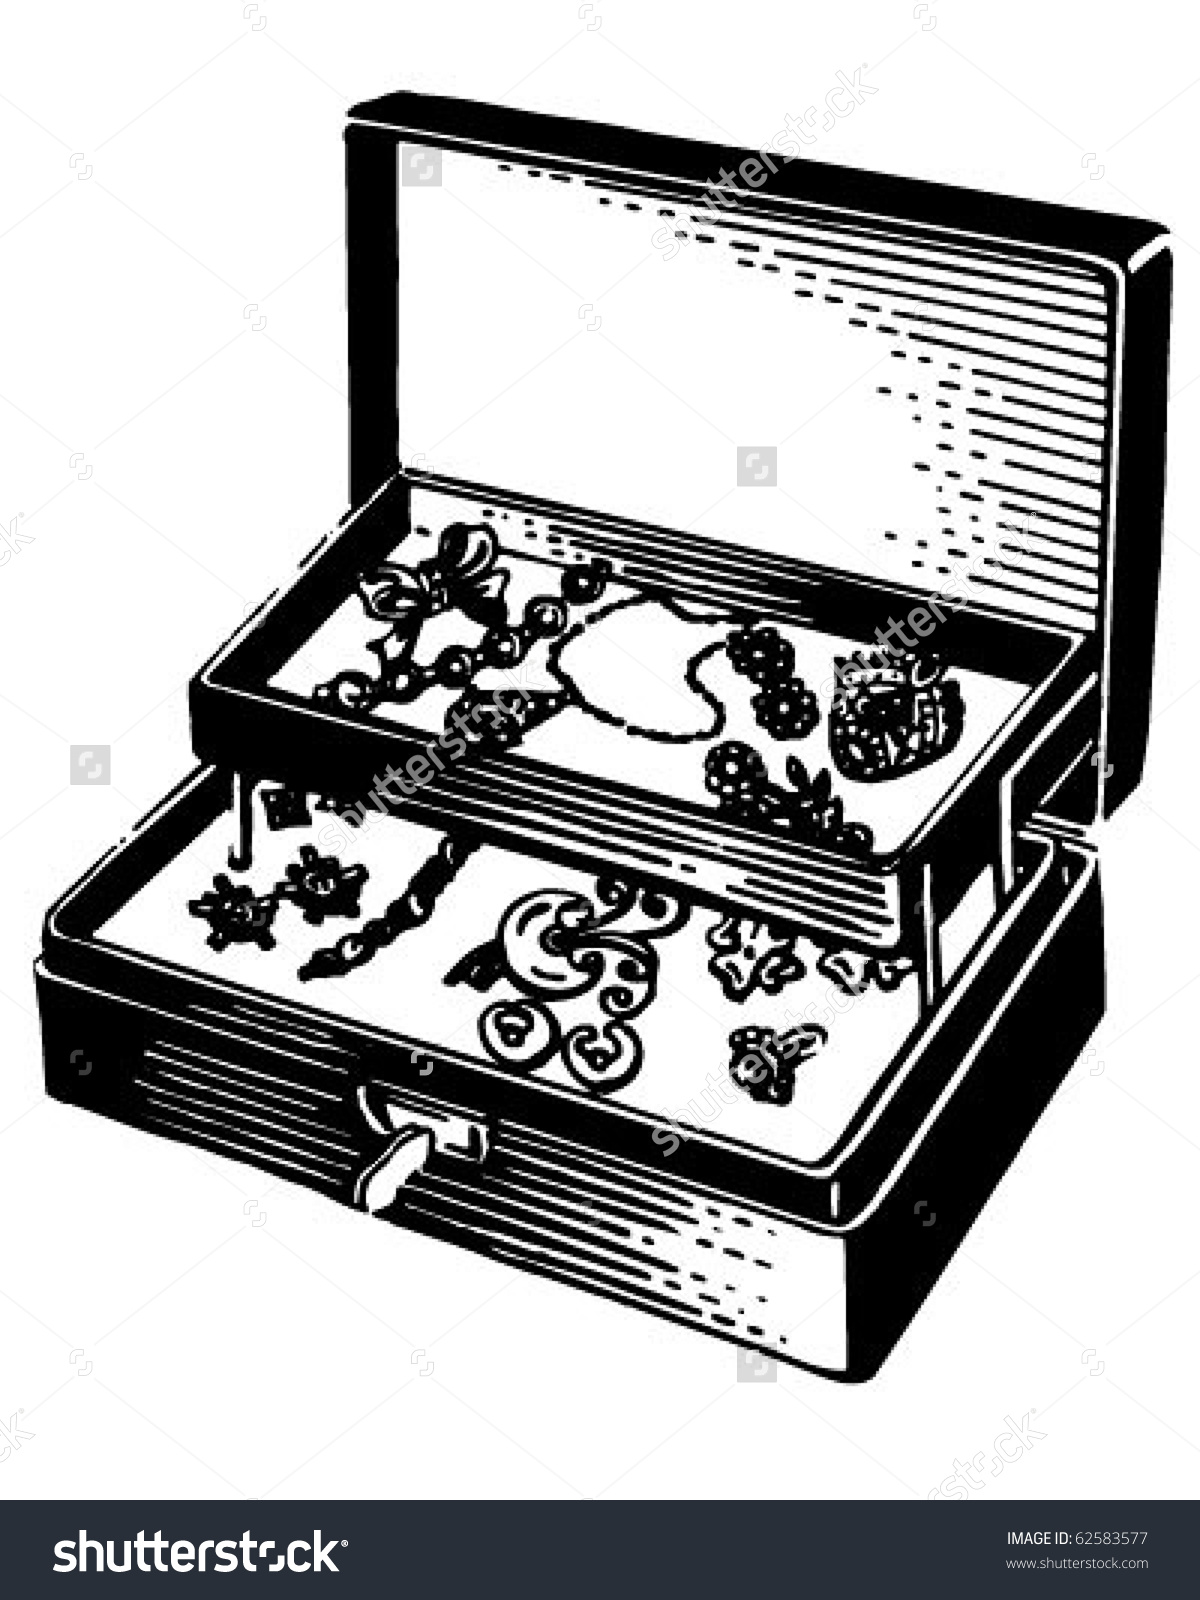 Antique jewel box clipart #13